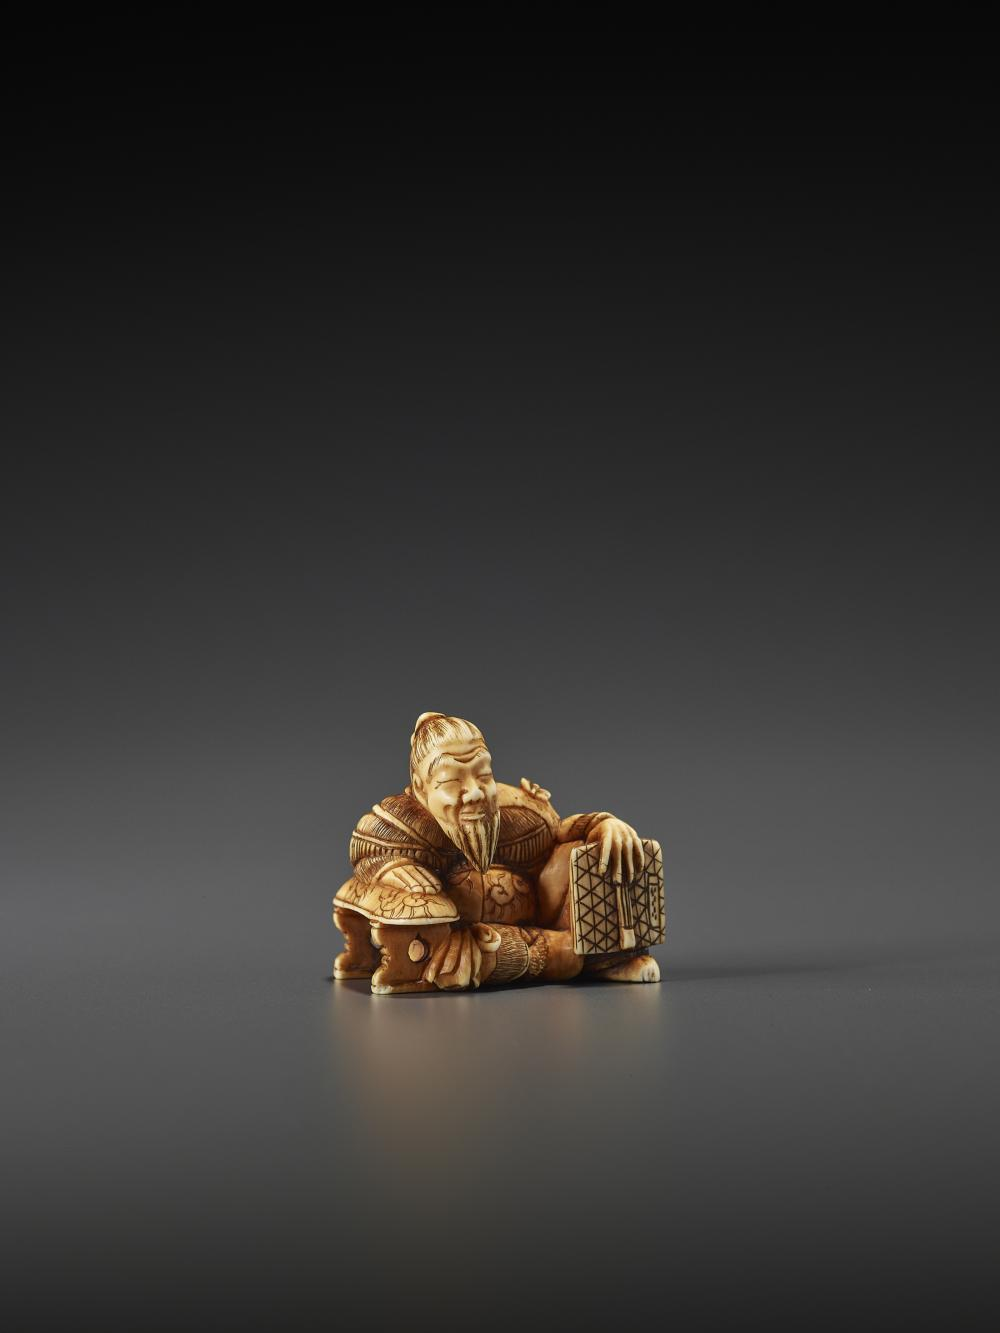 A FINE IVORY NETSUKE OF A COURT OFFICIAL